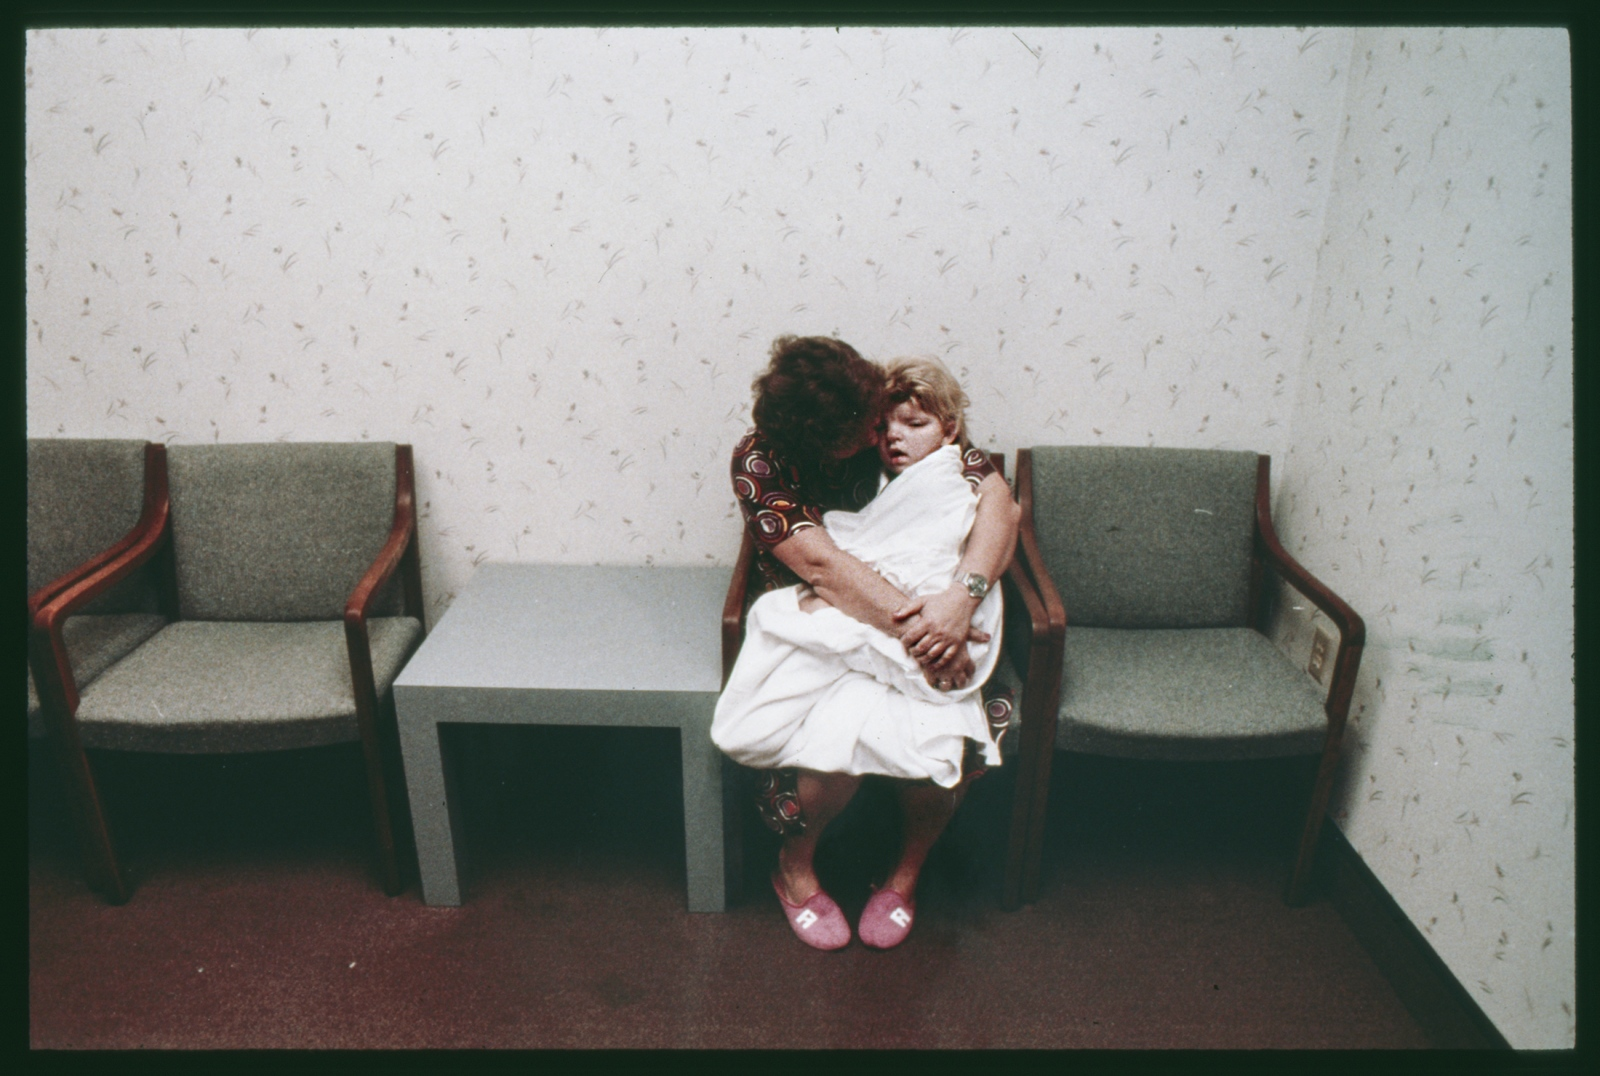 Single mother and daughter, pre-operation, Dallas, Texas, USA. 1989.